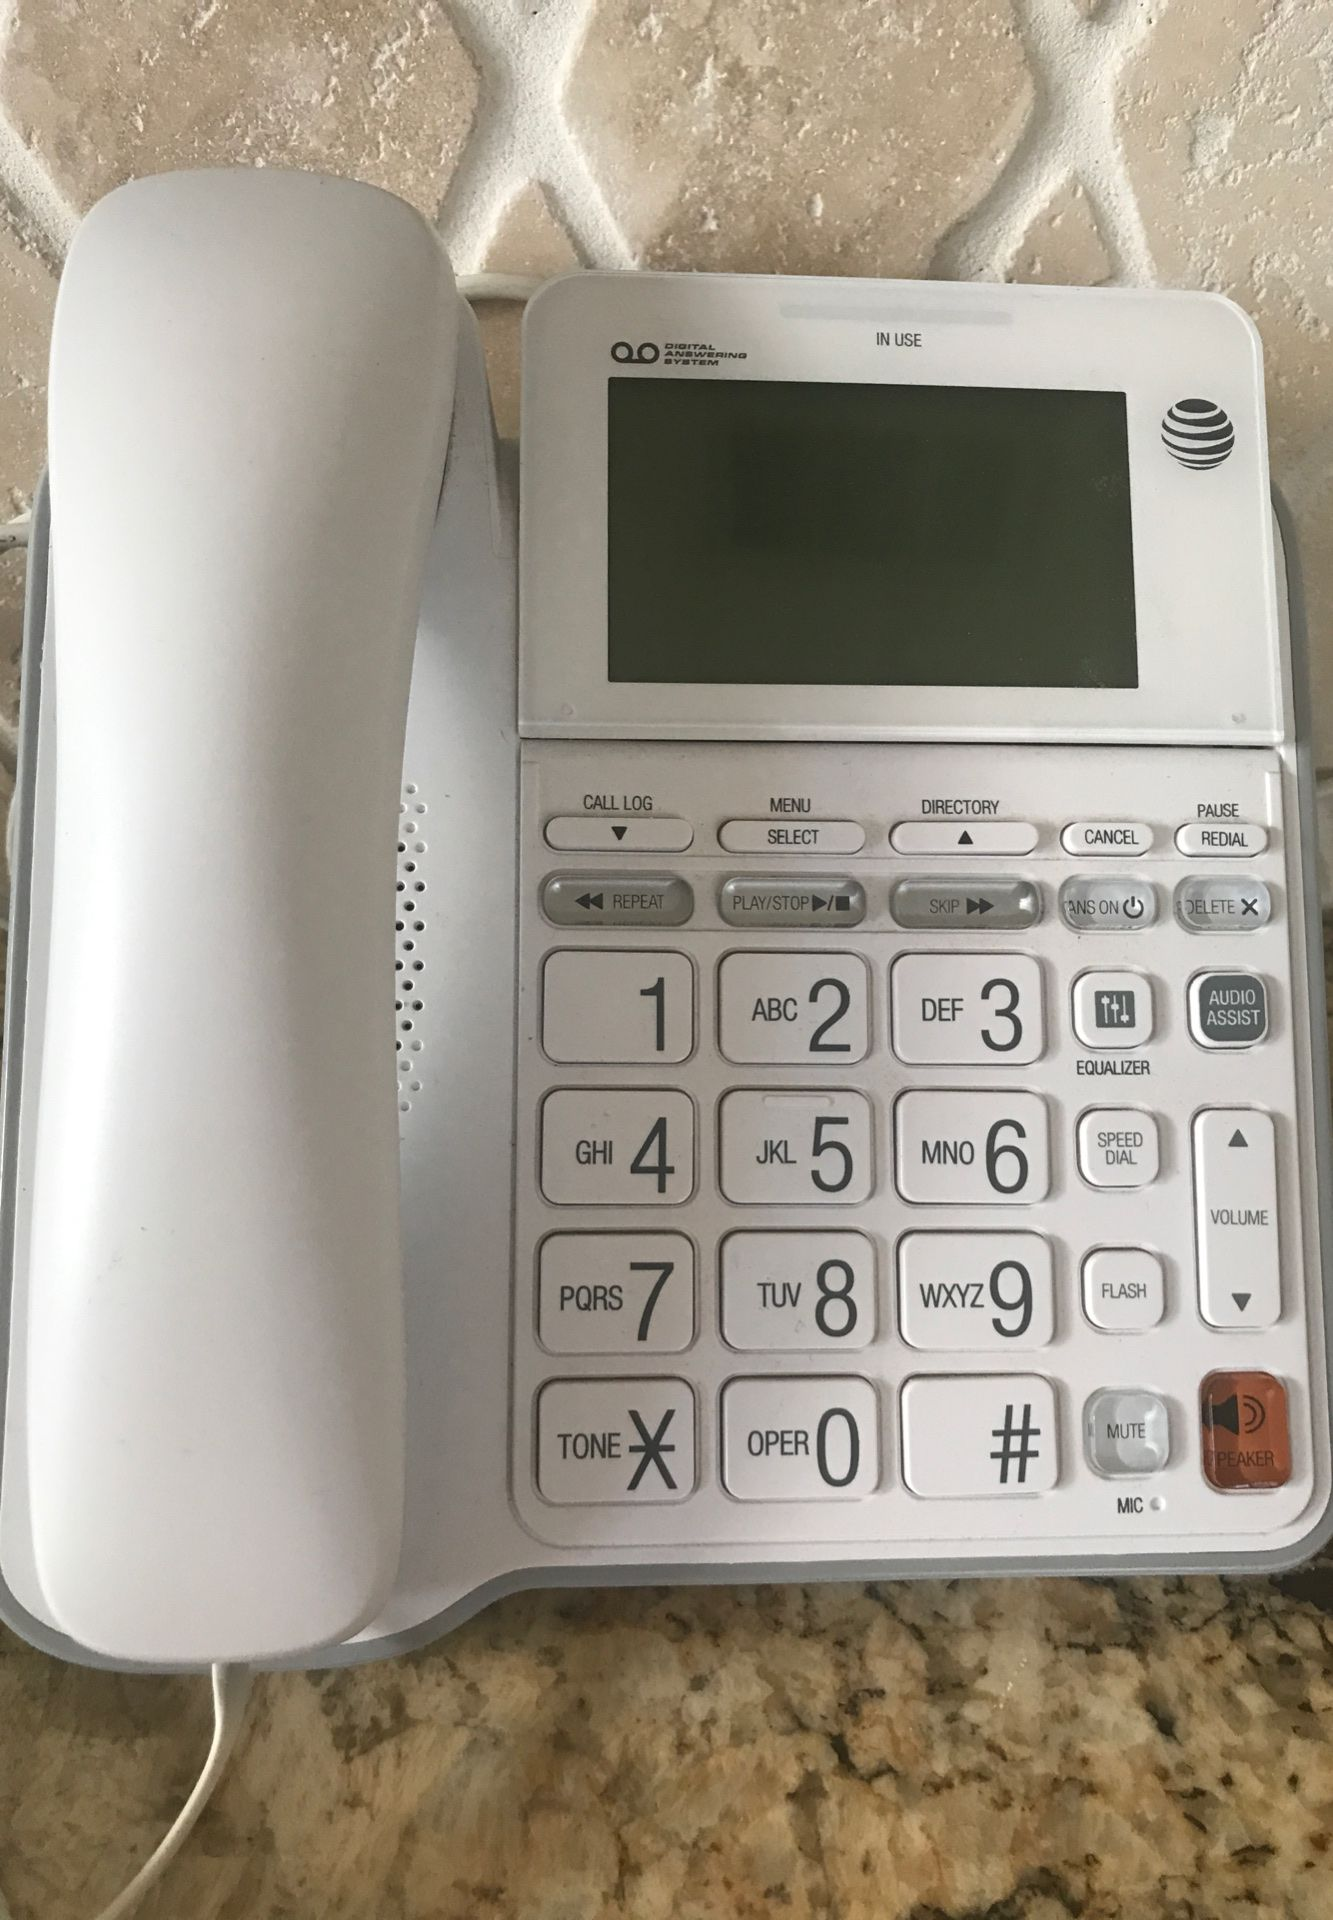 AT&T Corded Answering Phone System